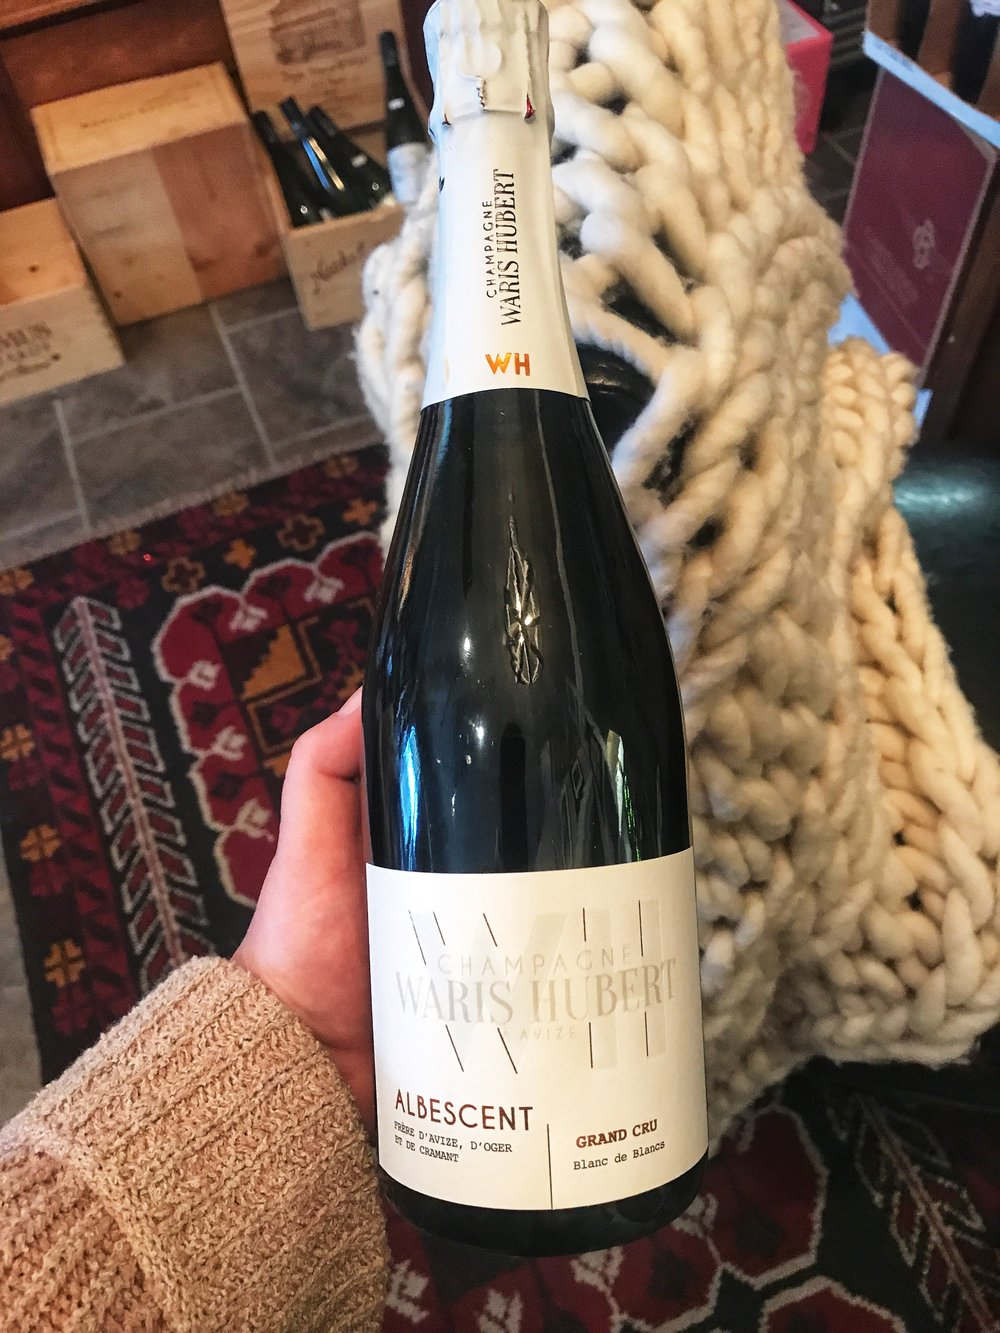 "NV Champagne Waris-Hubert ""Albescent"" Grand Cru Blanc de Blancs (Reg. 59.99/Sale 48.99) Often in the region of Champagne, from the hands of matrimony stems the joining not only of two people but plots of vineyard land as well. In 1997, Stéphanie Hubert and Olivier Waris were wed. Stéphanie & Olivier are each the fourth generation of grape growing families in Avize, a Grand Cru-classified village of the Côte des Blancs. Thus was born the estate of Waris-Hubert, with vineyards in the villages of Avize, Oger, Cramant, Chouilly and Aÿ, all classified ""Grand Cru"", along with the communes of Grauves, Bisseuil and Sézanne, terroirs of character. Together this is an exceptional collection of vineyards, in all a total of 11 hectares (26 acres). THE WINE Vineyard Profile Villages of Cramant and Avize Average age of vines: 25 years Calcareous clay soil Vine husbandry: 100% tillage Wine Summary Made from Chardonnay grapes. Vine age – 25 year average in 2015. Grown on soils of Calcerous & clay. Fermented in stainless steel vats at 16°C. Aged in bottle at 11°C. Aged for approximately 3 years. Technical Information 100% Chardonnay Grand Cru 100% cuvée (first press juice) Cold vinification: cold settling at 4°C for 72 hours then alcoholic fermentation at 16°C. Vinification in stainless steel vats for 6 months. Cellar aging for approximately 3 years in racks at a constant temperature of 11°C. Dosage: Brut 7g/l.       Miscellaneous"